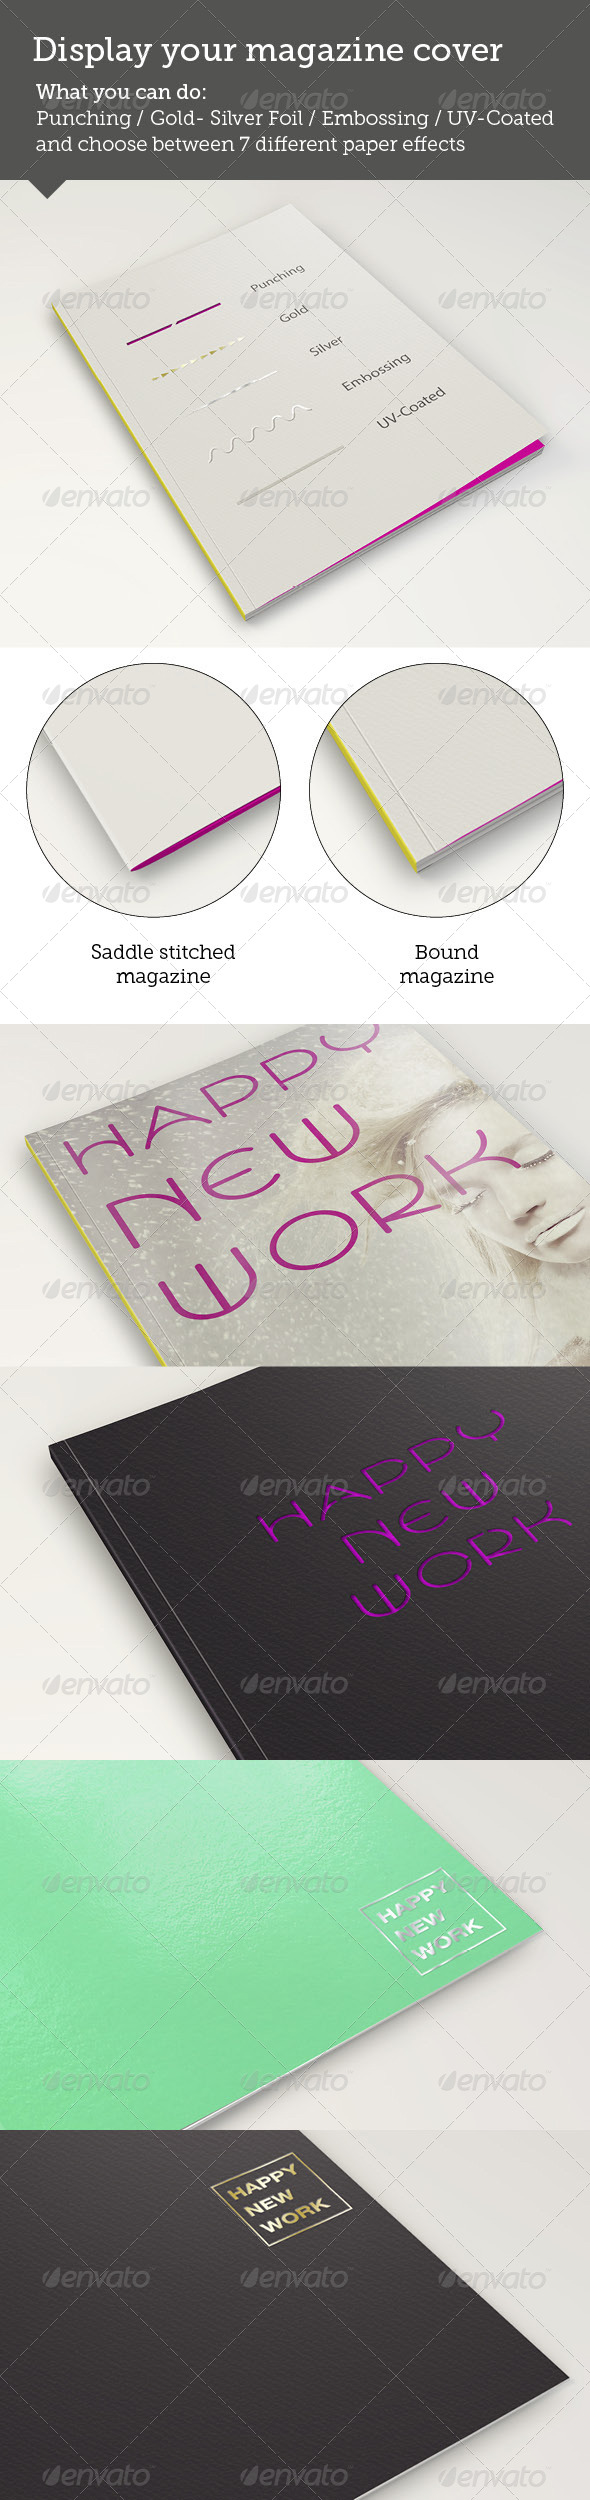 GraphicRiver Magazine MockUp Cover Simulation 7772240